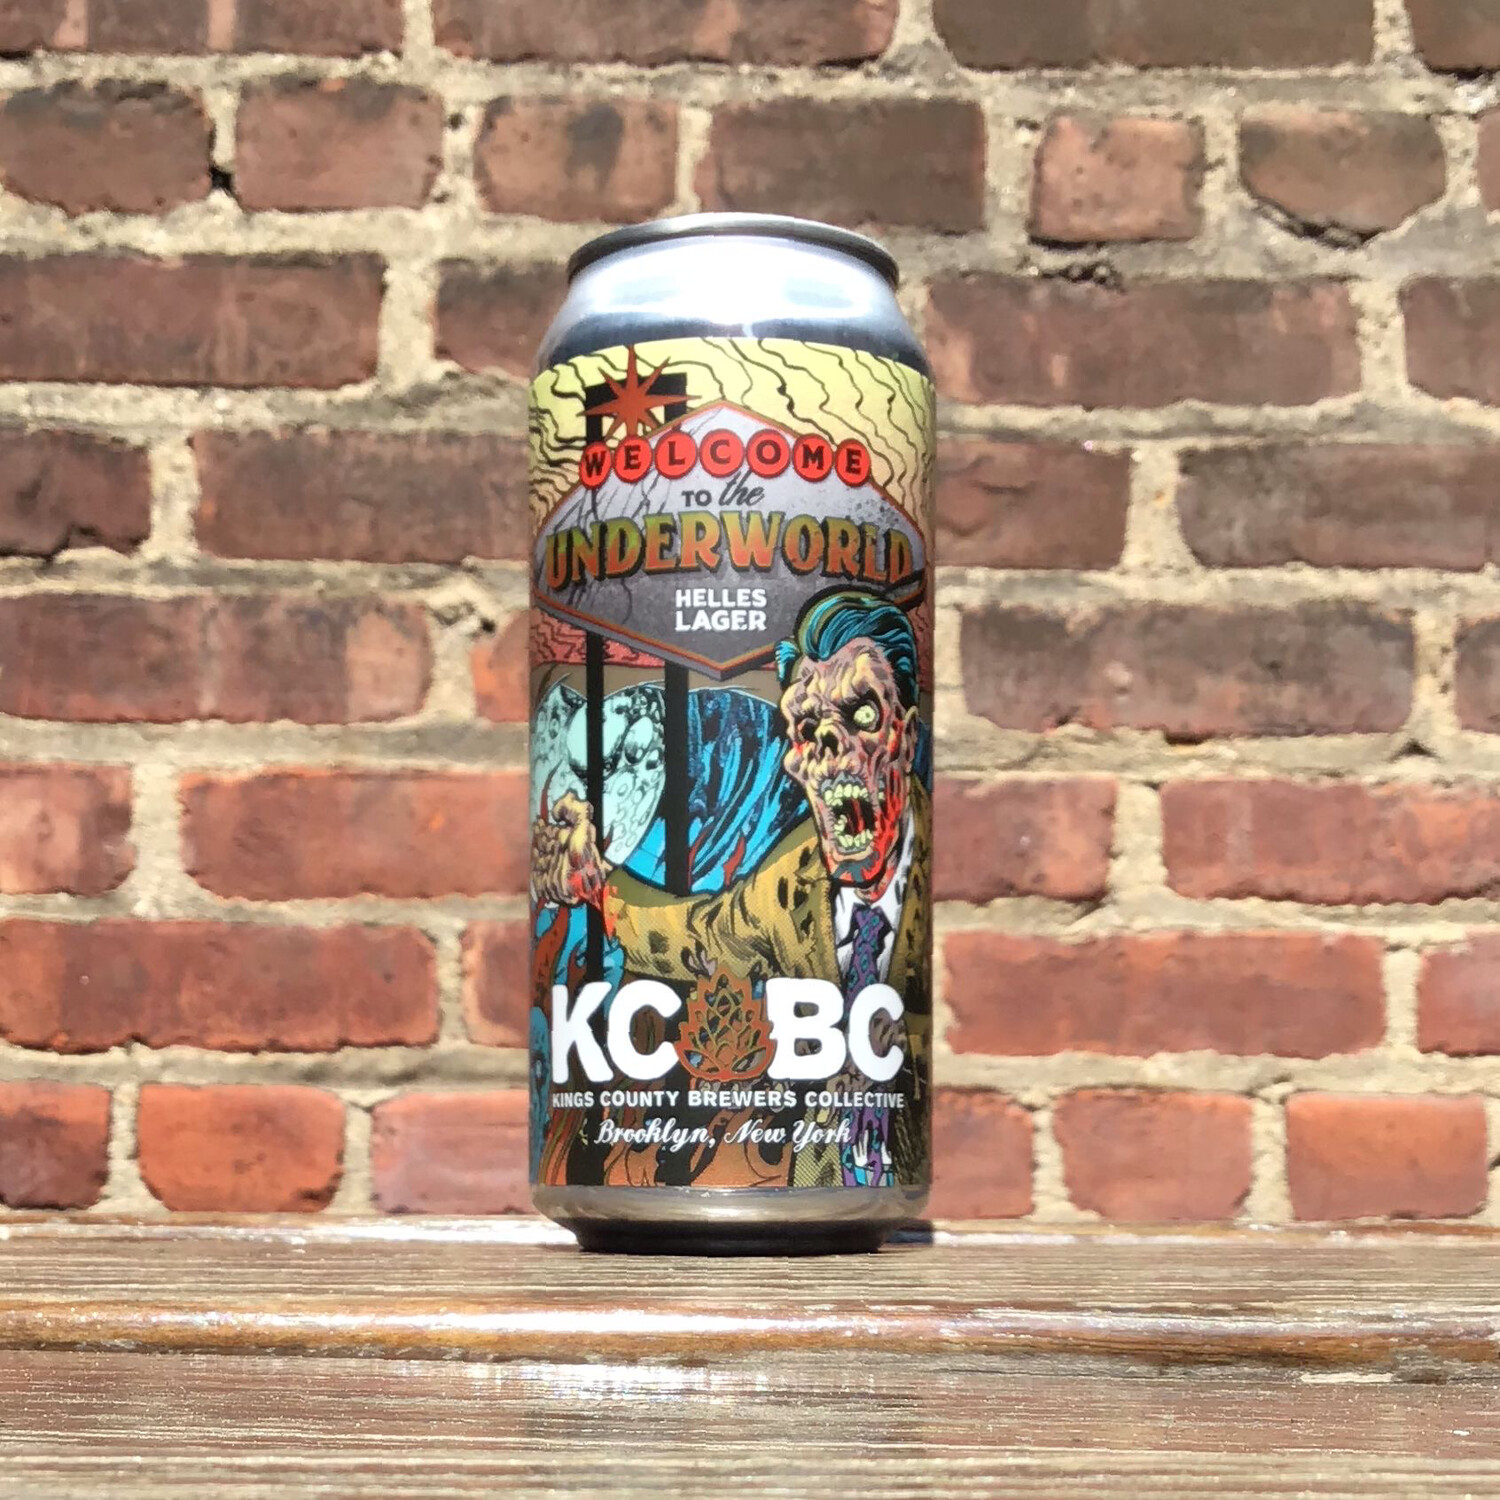 KCBC Welcome to the Underworld